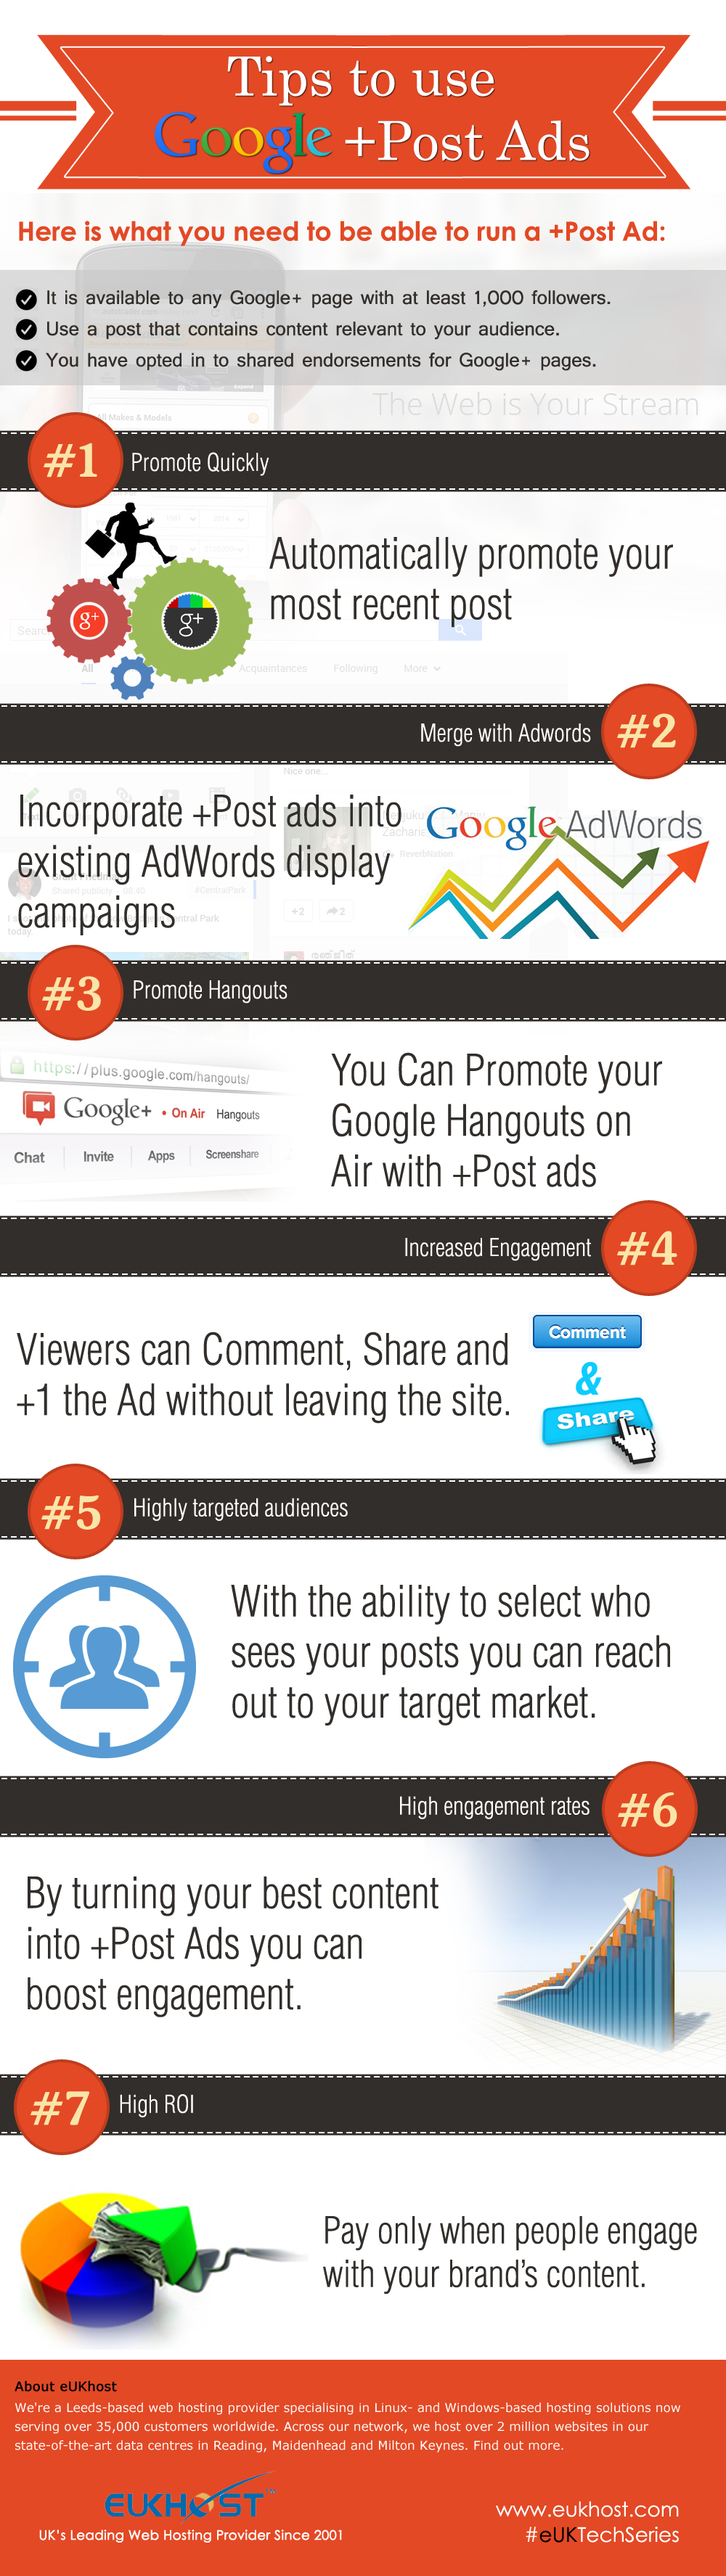 Tips To Use Google Plus Post Ads